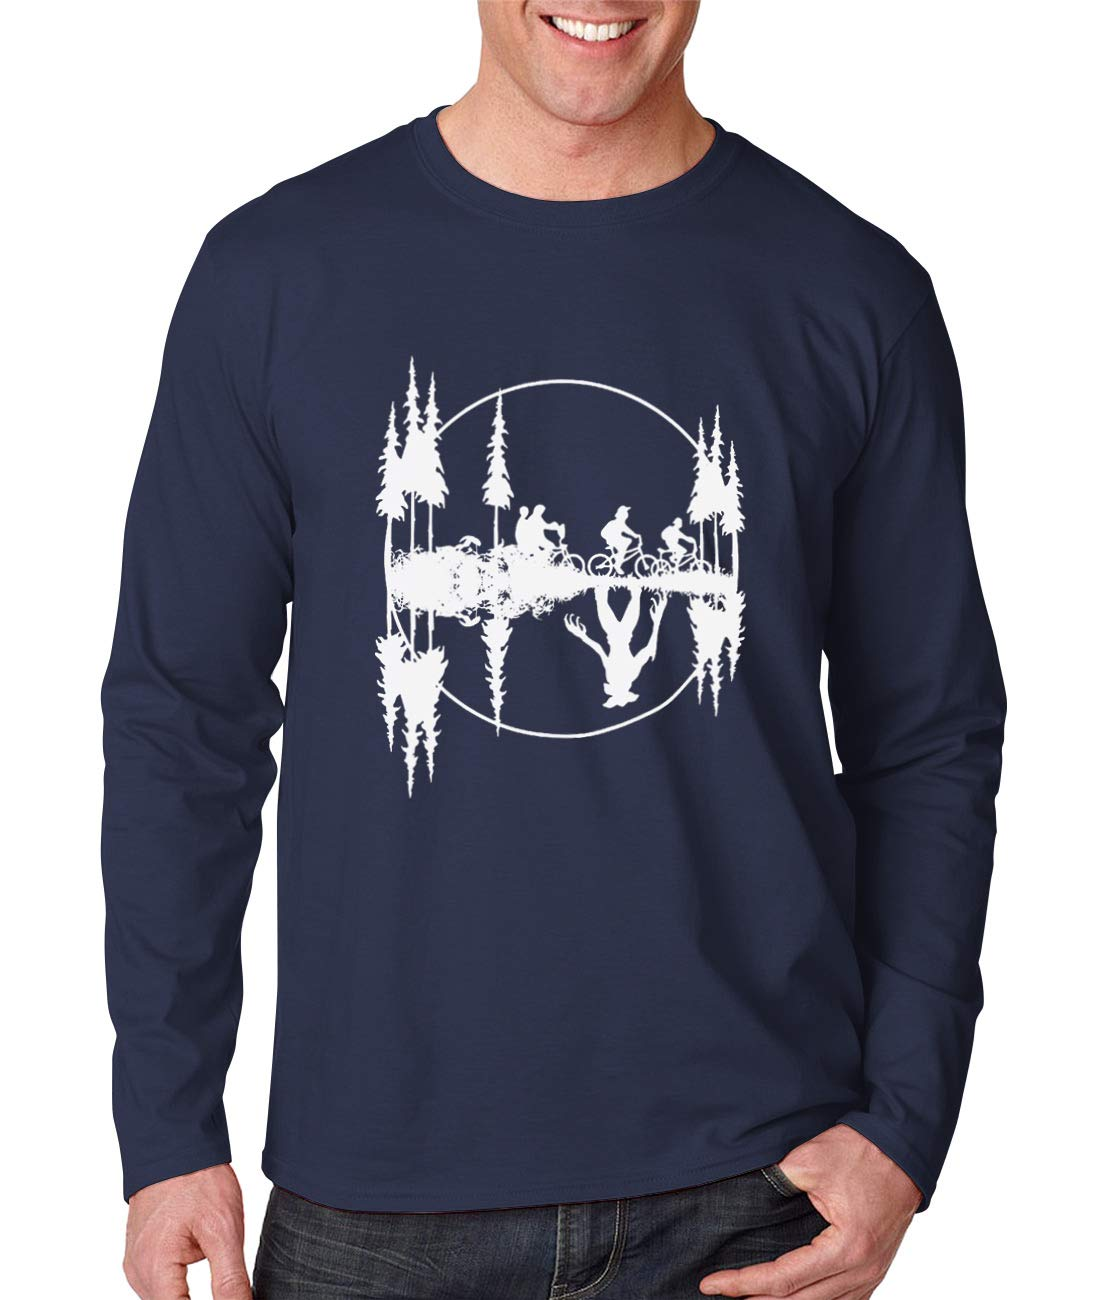 Mens Stranger Things Graphic Shirt Sports Gym Cotton Long Sleeve Tops Blouse, Unisex T-shirt Navy by Fmeijia